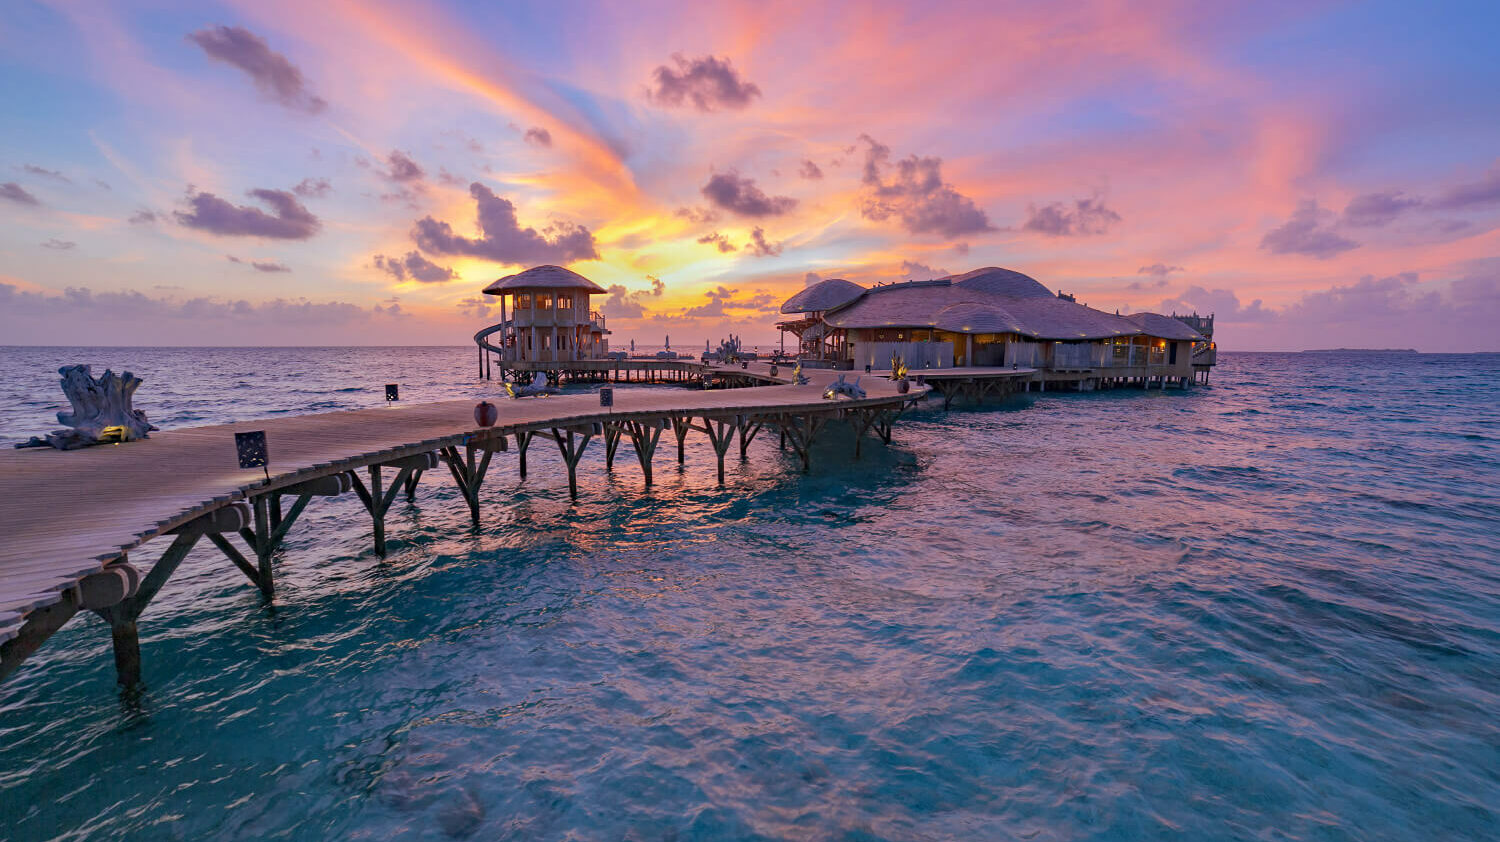 sunset ocean view-soneva fushi maldives